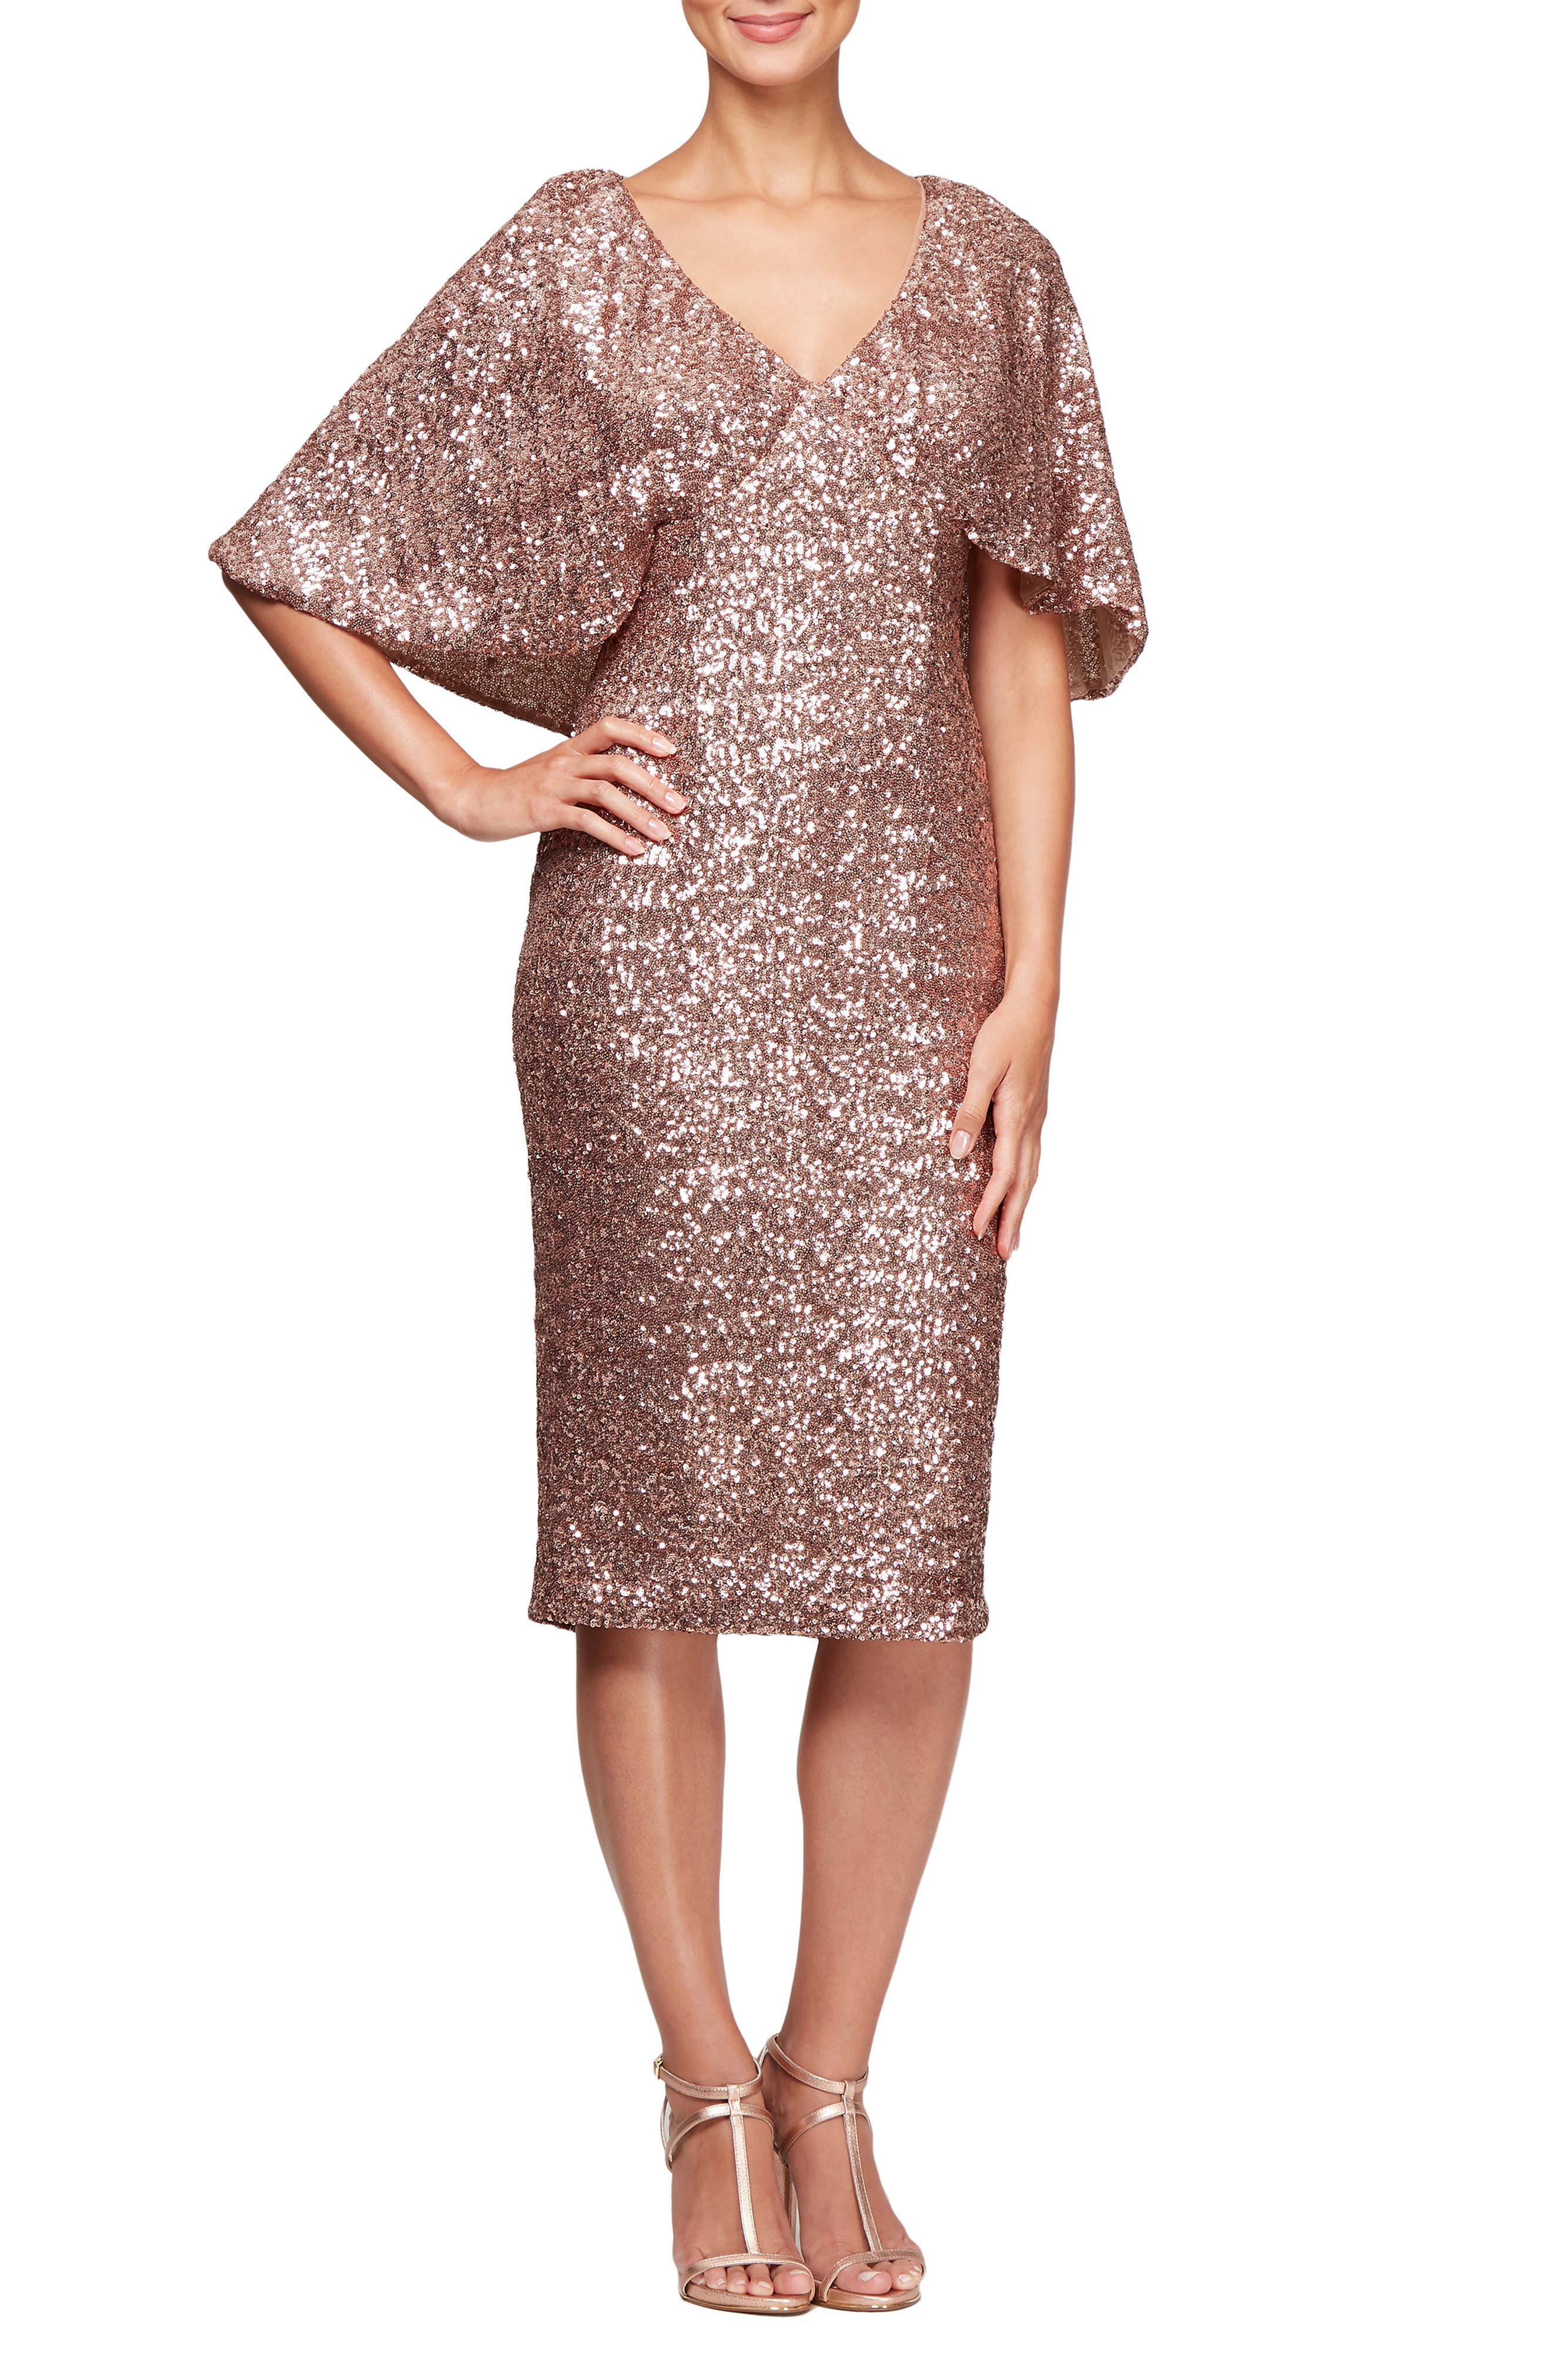 Capelet Sleeve Sequin Cocktail Sheath,                         Main,                         color, ROSE GOLD